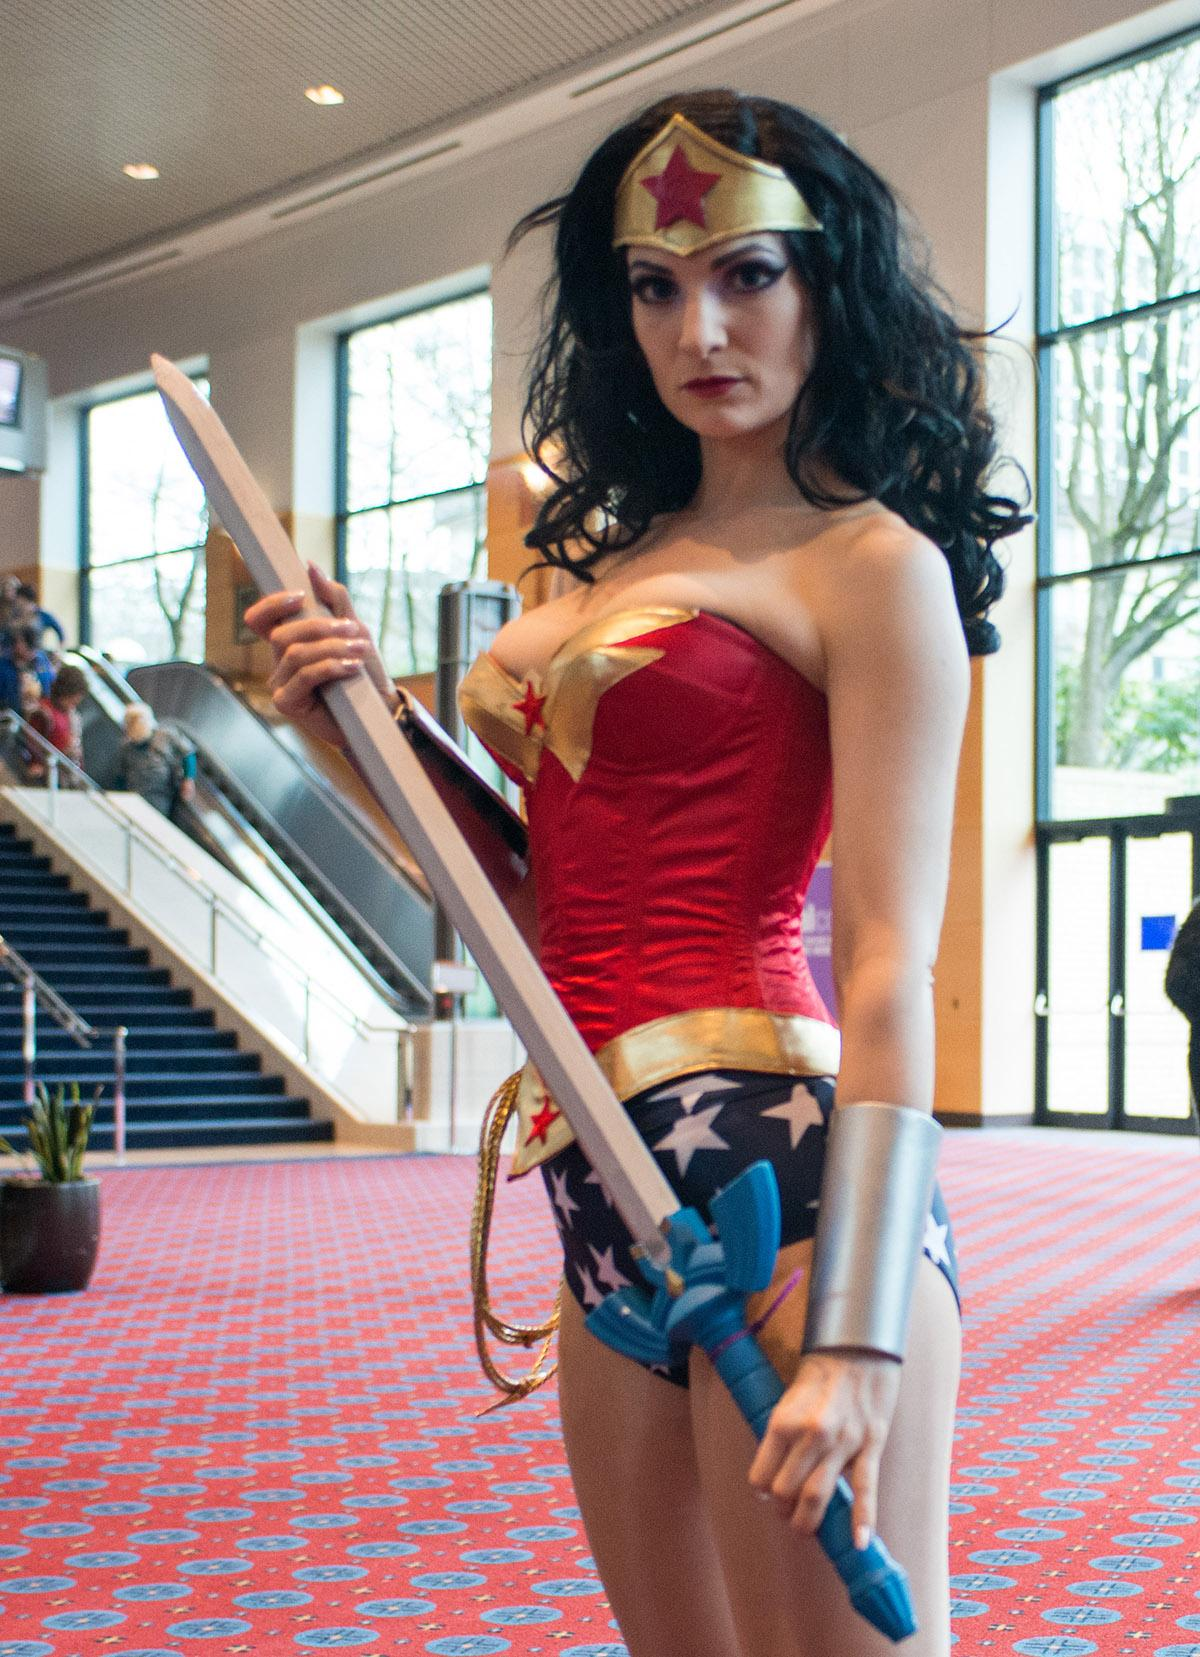 Fans Filled The Oregon Convention Center For Wizard World Comic Con Portland A Three